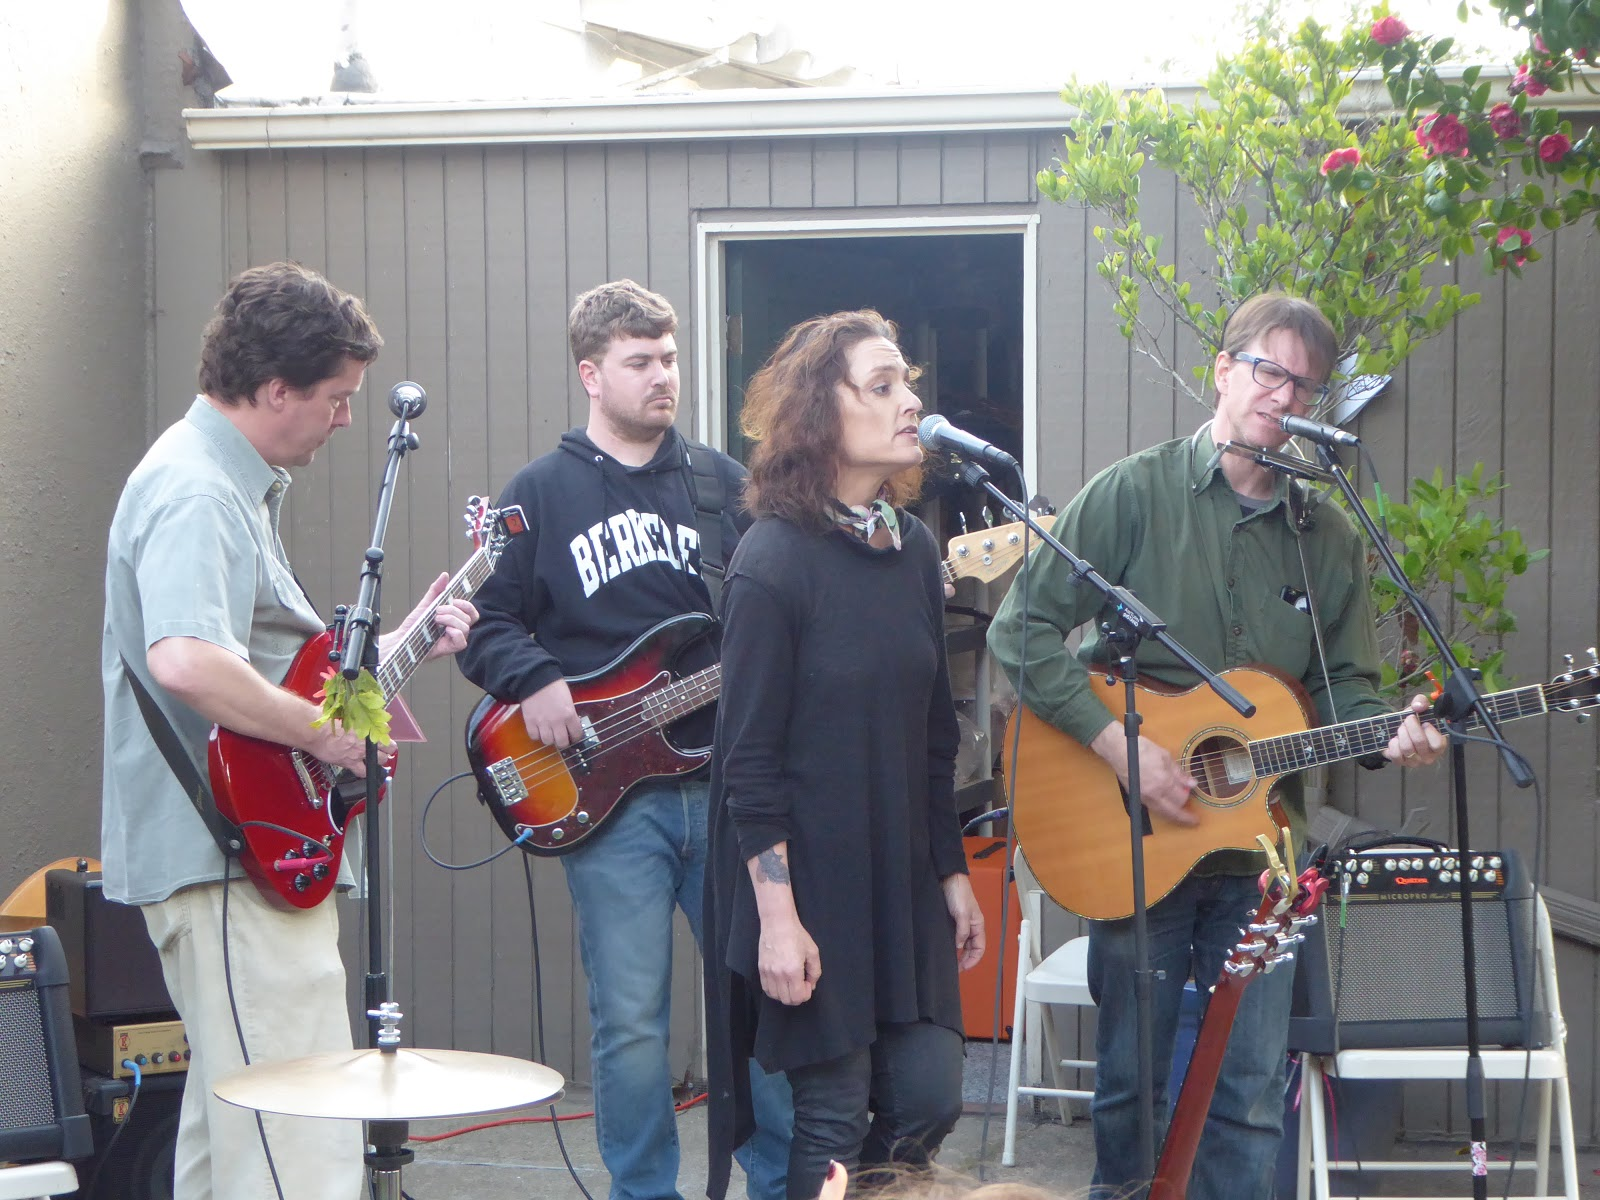 Deborah Crooks A More Diverse Form Of Americana Blog Byo Concert Small In Sand Alameda House Photos By Tania Johnson